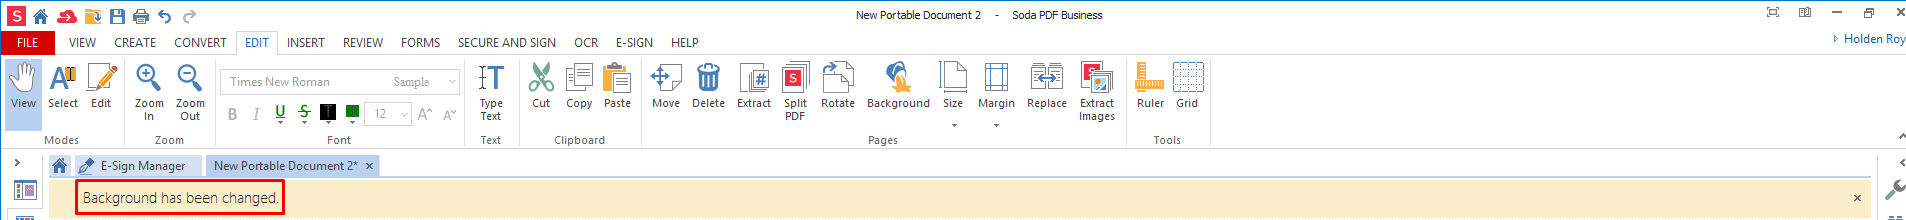 How to Replace or Add Background Color in a PDF Document | Soda PDF Blog